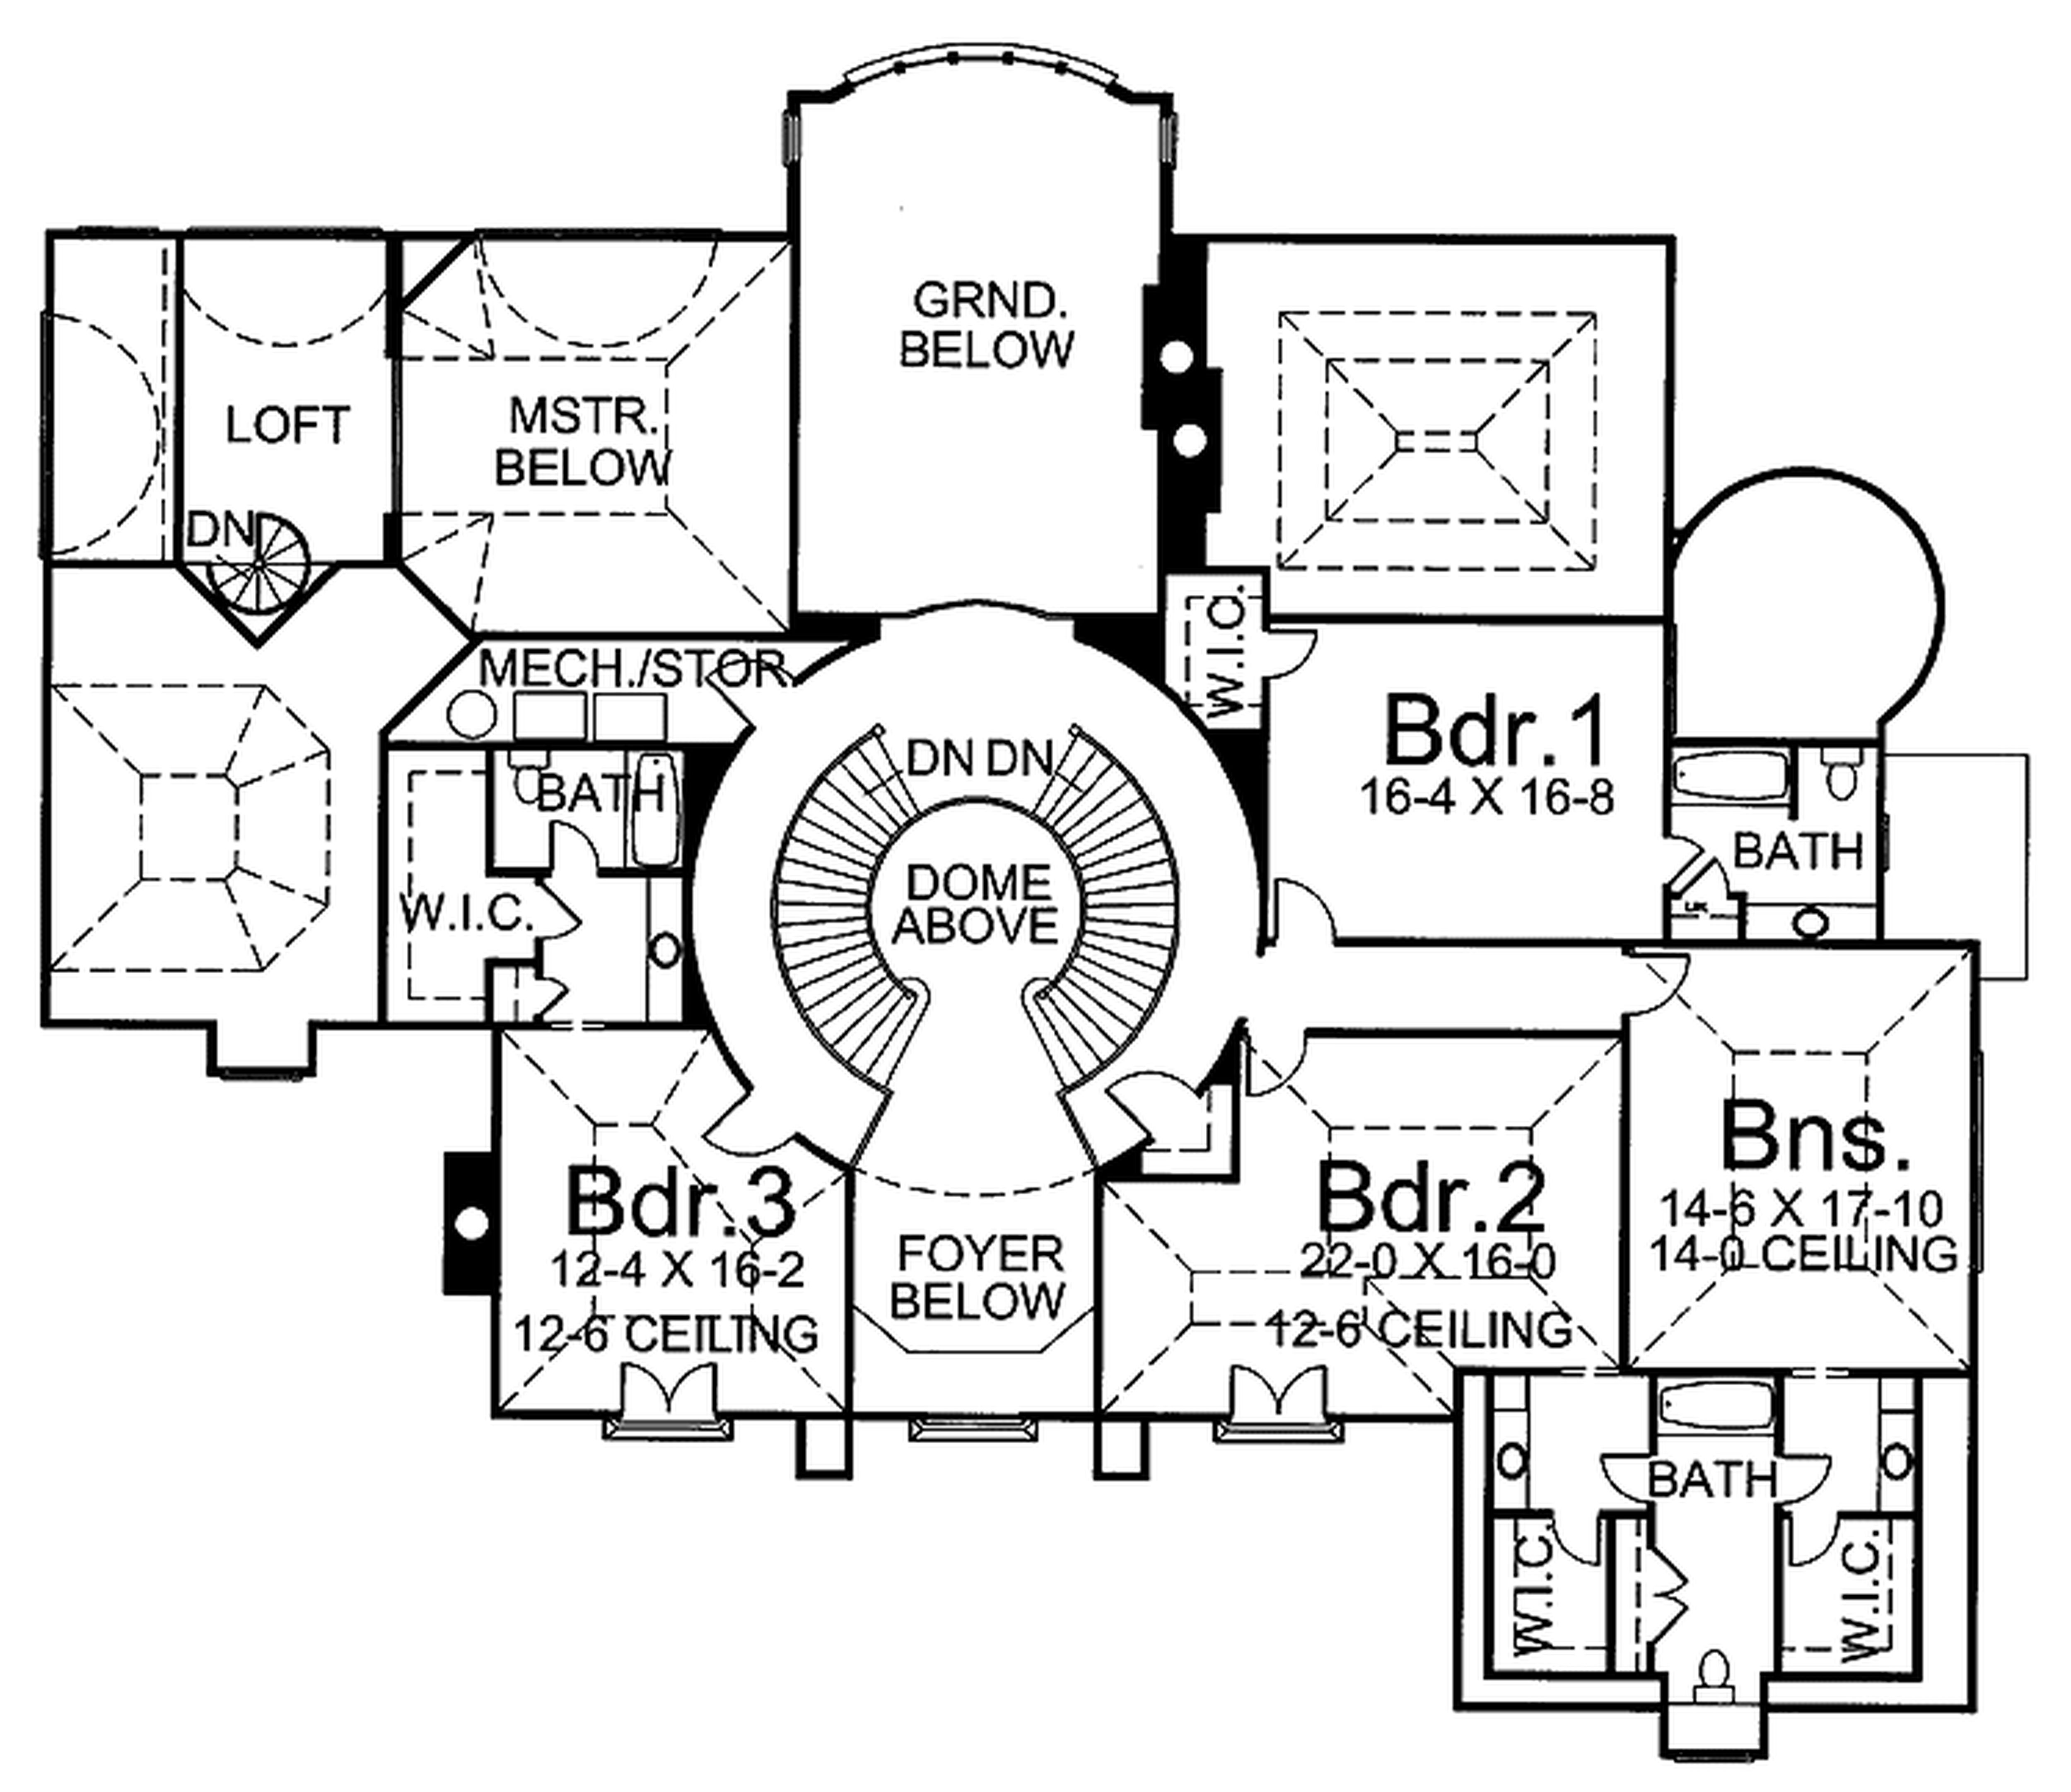 School For Drawing At Free Personal Use Minecraft Circle Diagrams 5000x4327 Interior Design Plan Floor Plans Ideas Houseplans Excerpt